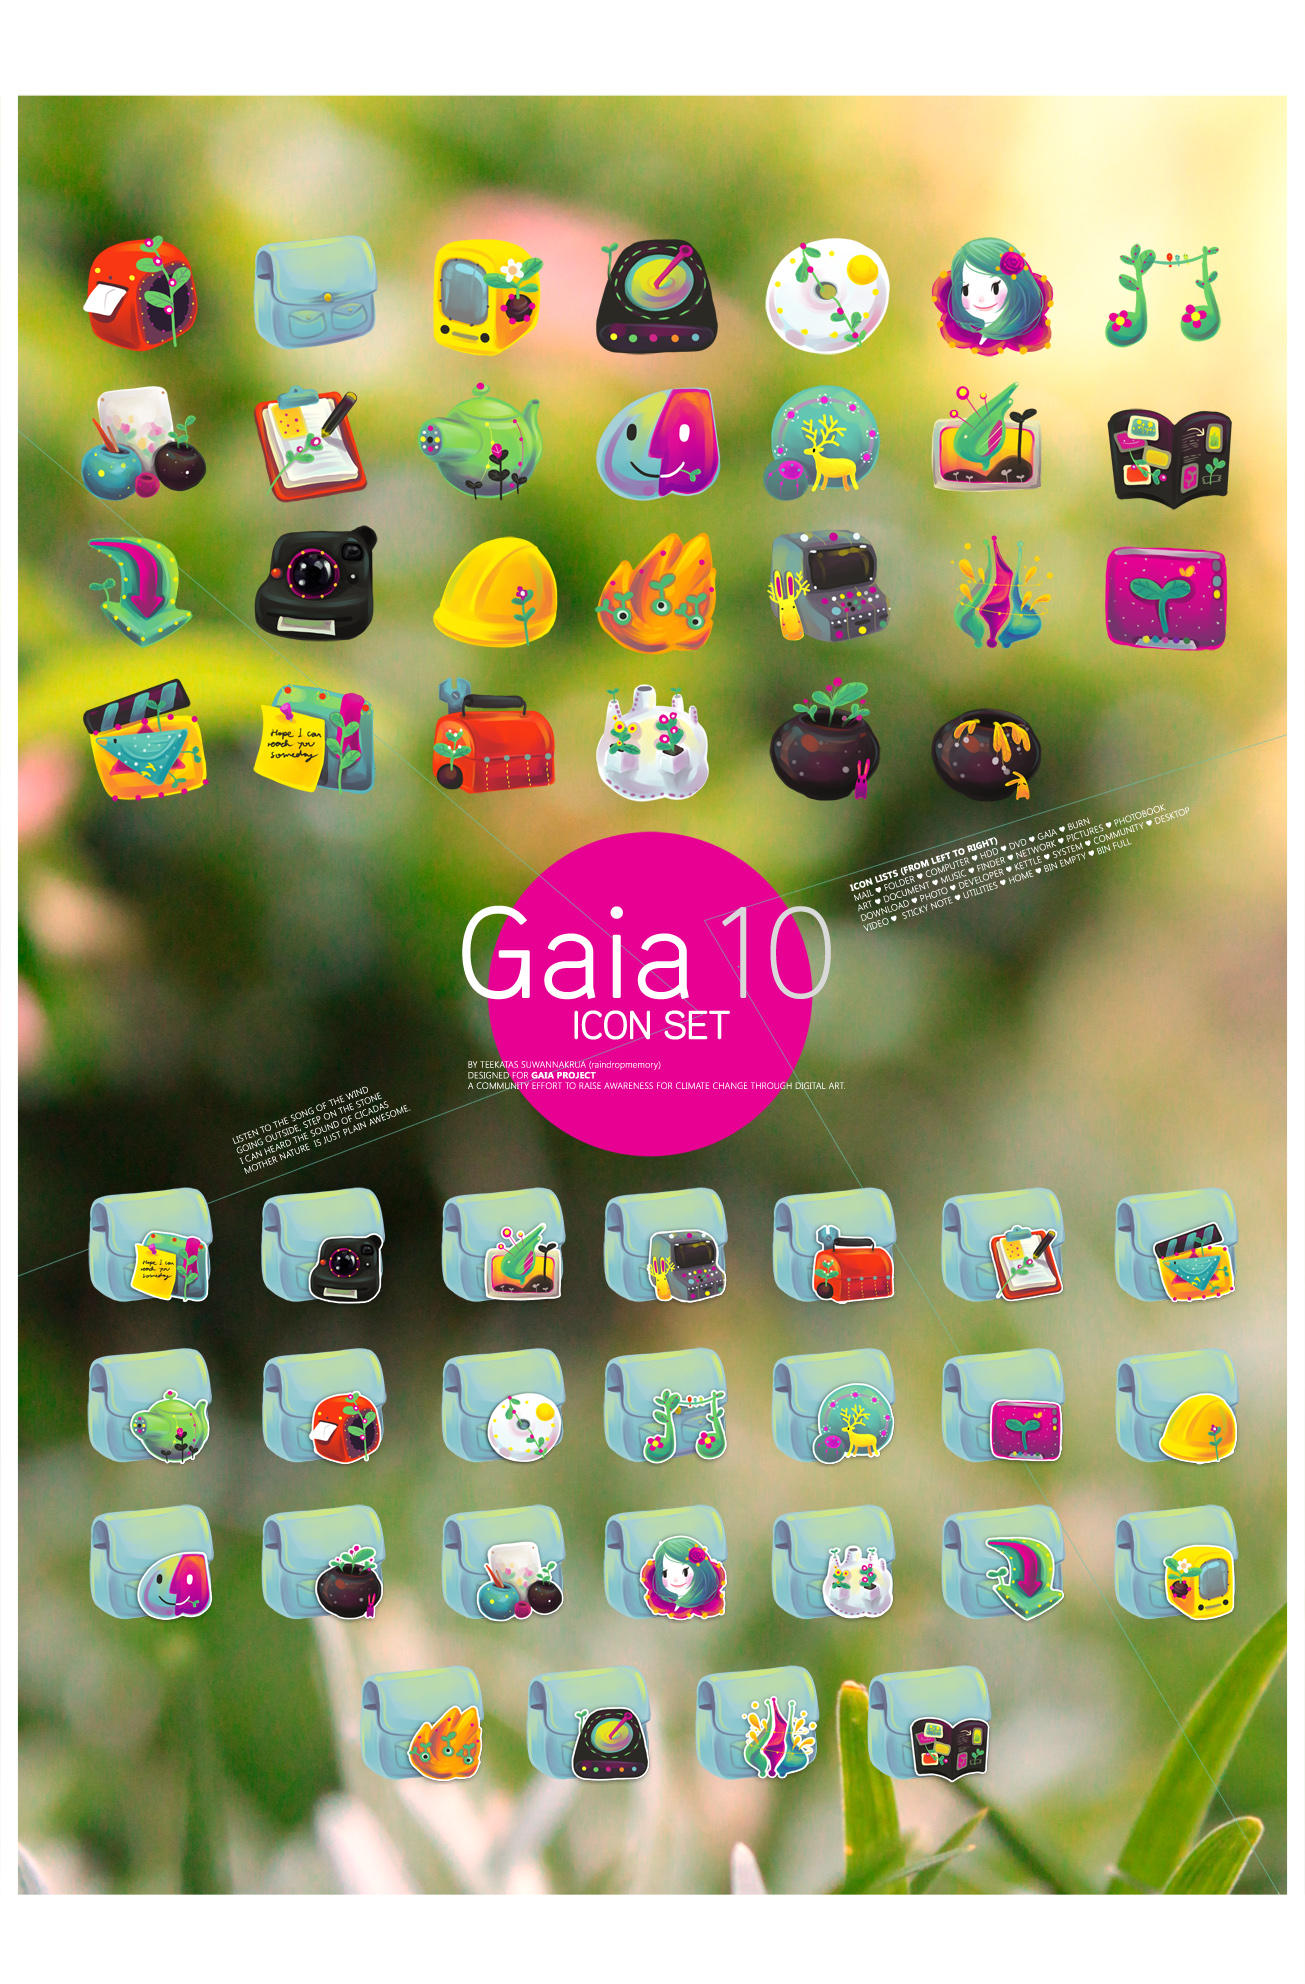 Gaia10 Icon Set By Raindropmemory On DeviantART